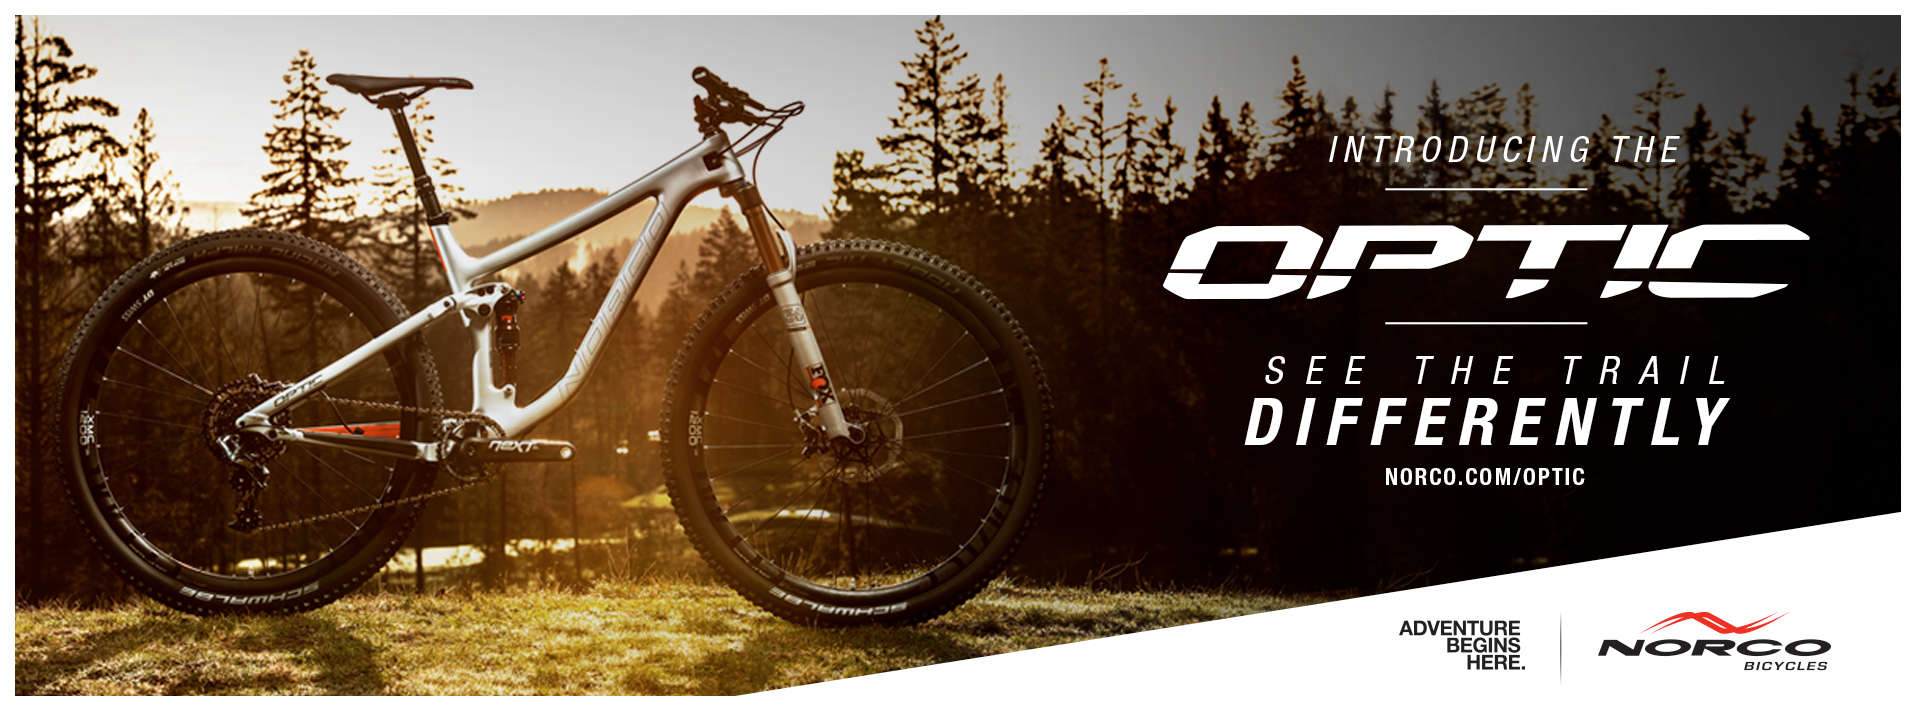 Norco Optic trail bike - see the world differently